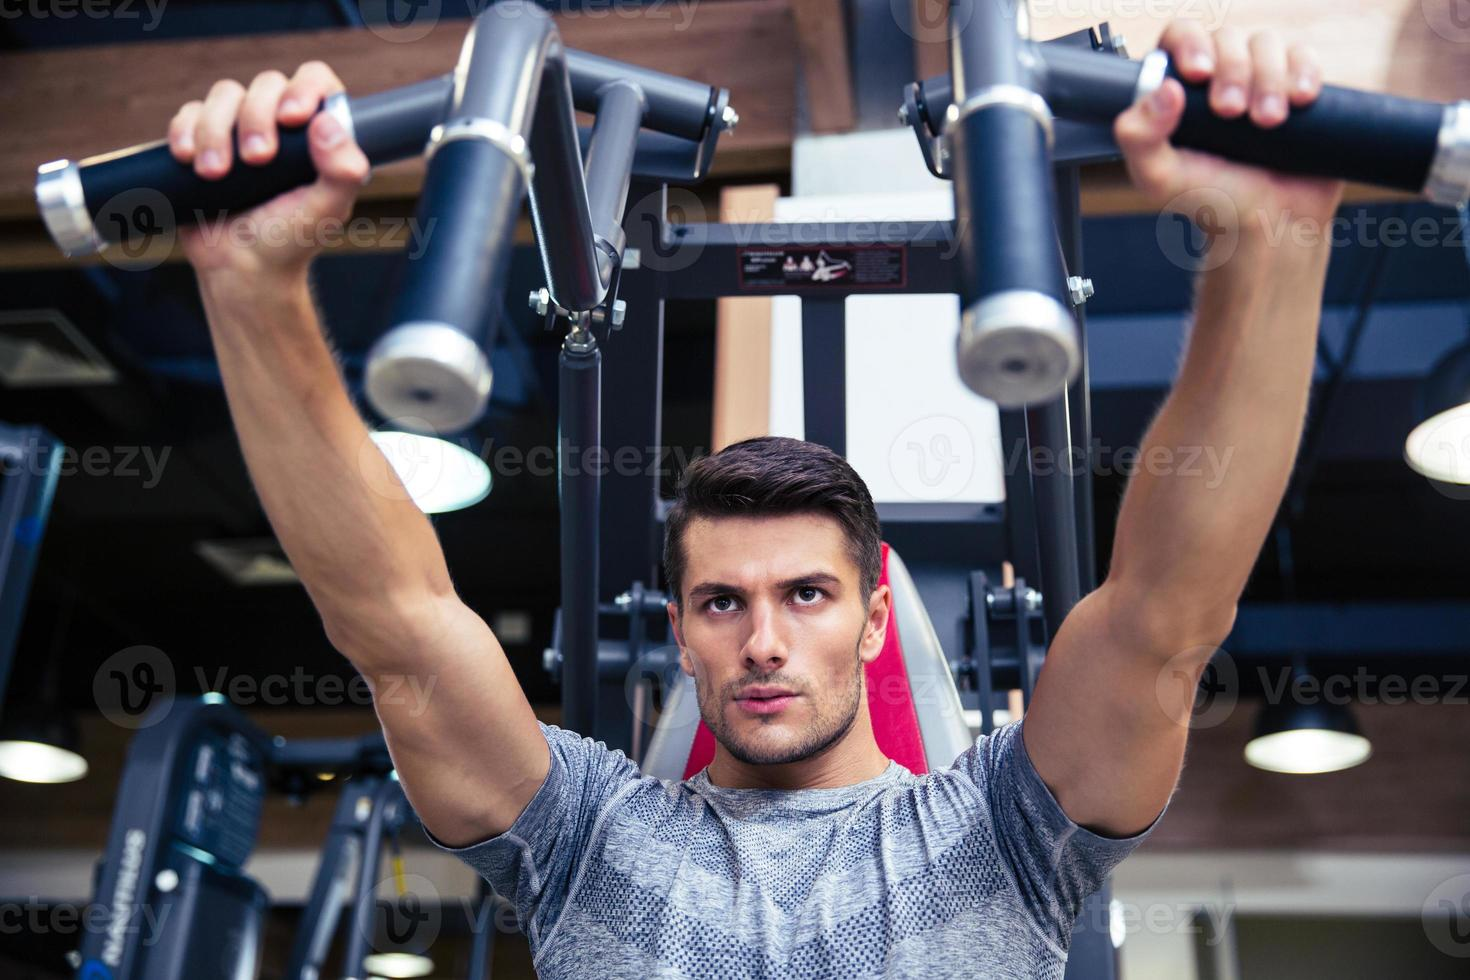 homme, faire, exercice, fitness, machine, dans, gymnase photo